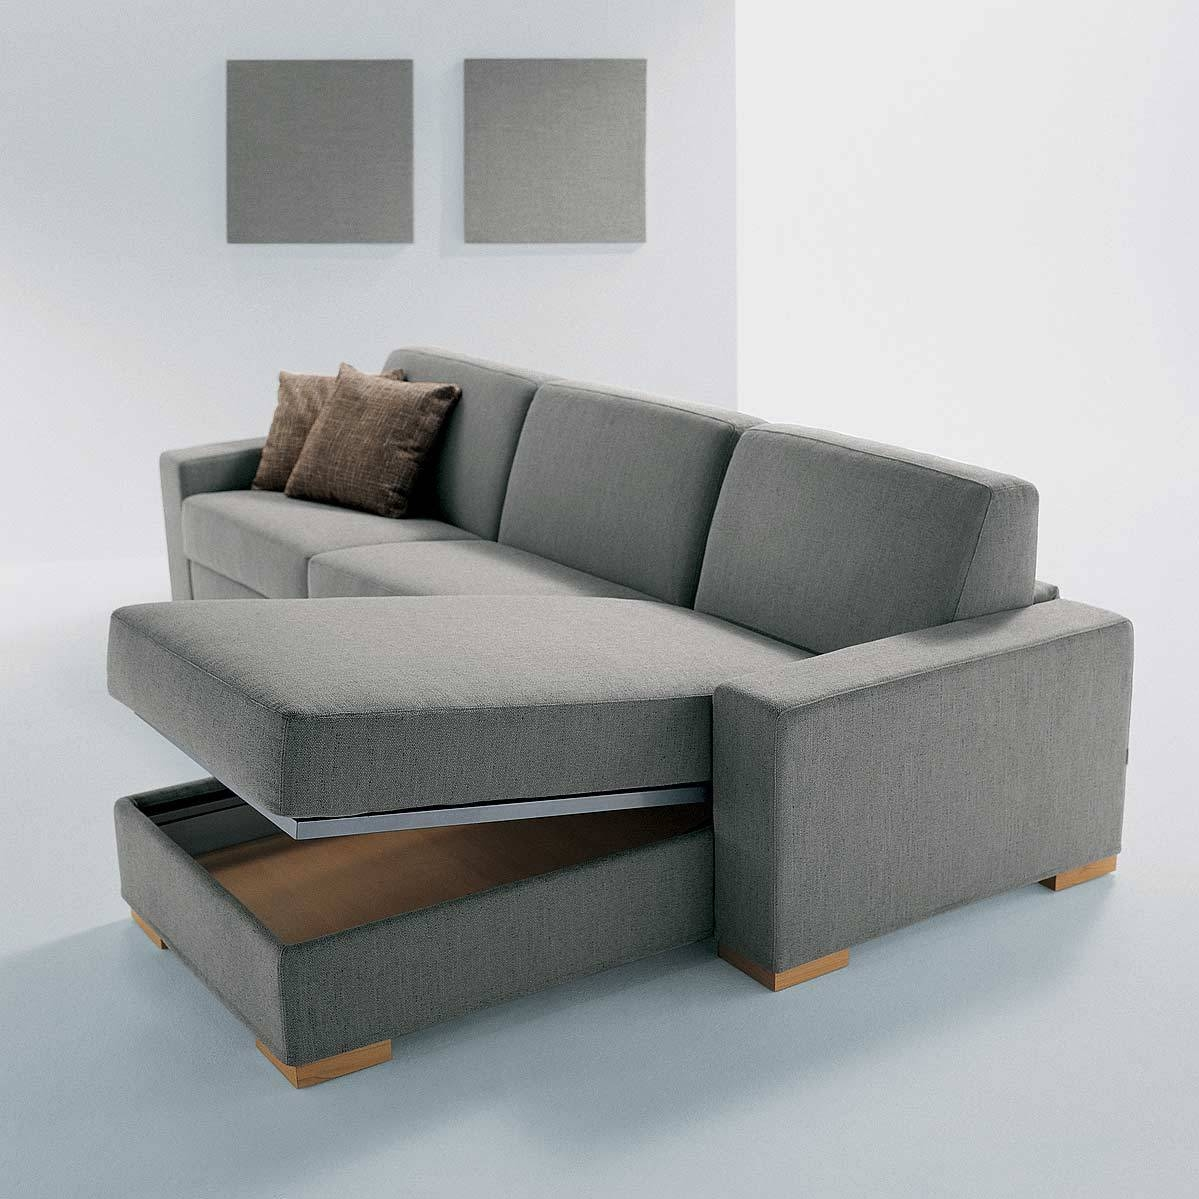 Convertible Sofa Bed With Storage – S3Net – Sectional Sofas Sale Within Small Sectional Sofas With Storage (View 4 of 15)